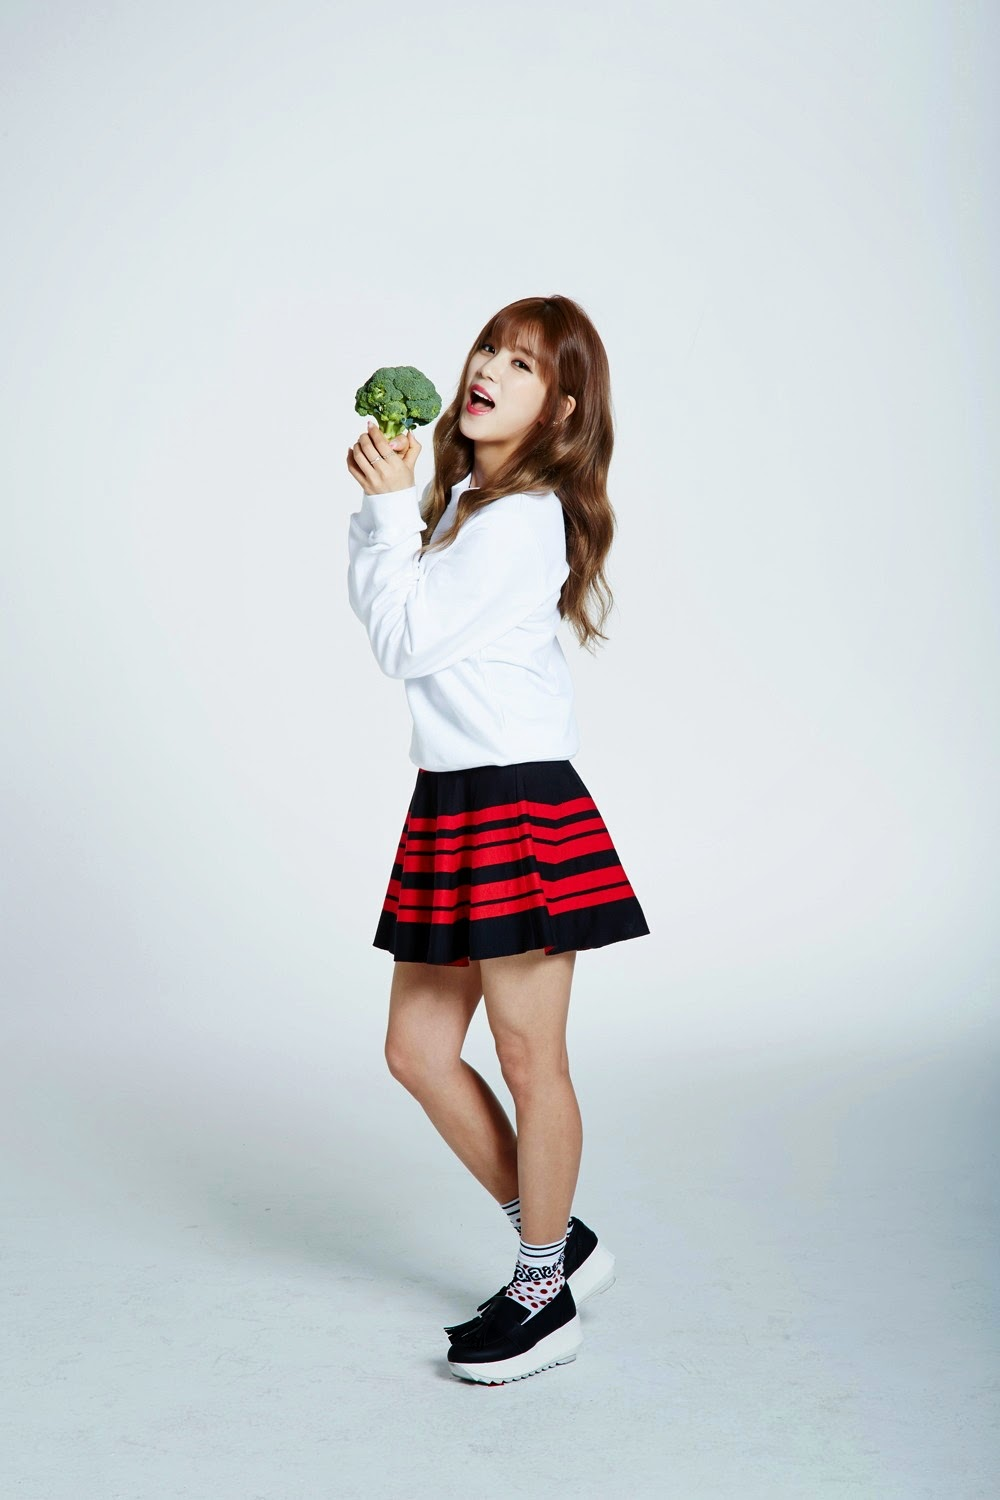 Slimmy Lunch Box Apink Chorong